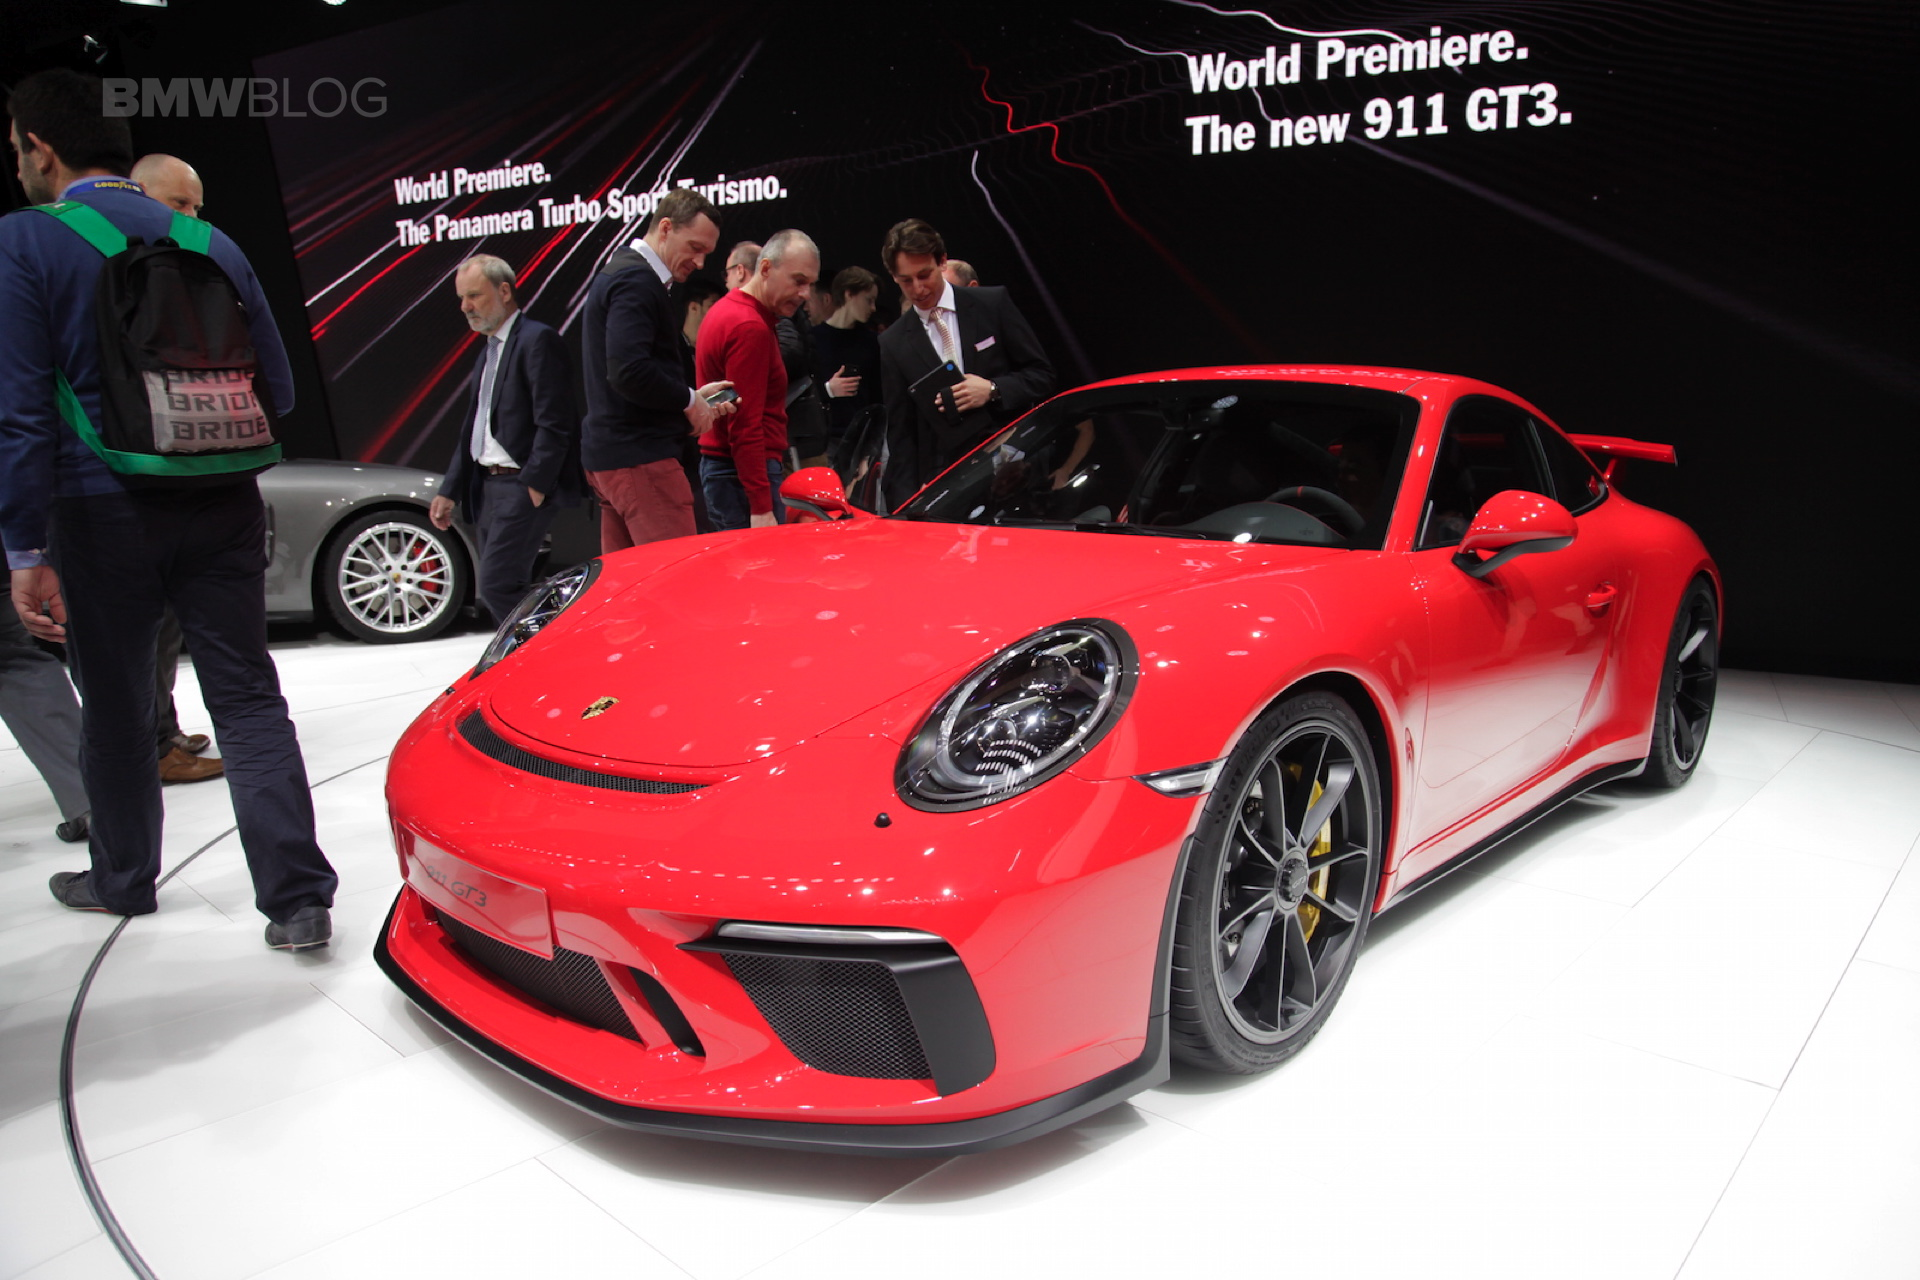 The Deliveries Of New Gt3 Start From Fall This Year Around September And Us Msrp Is 143 600